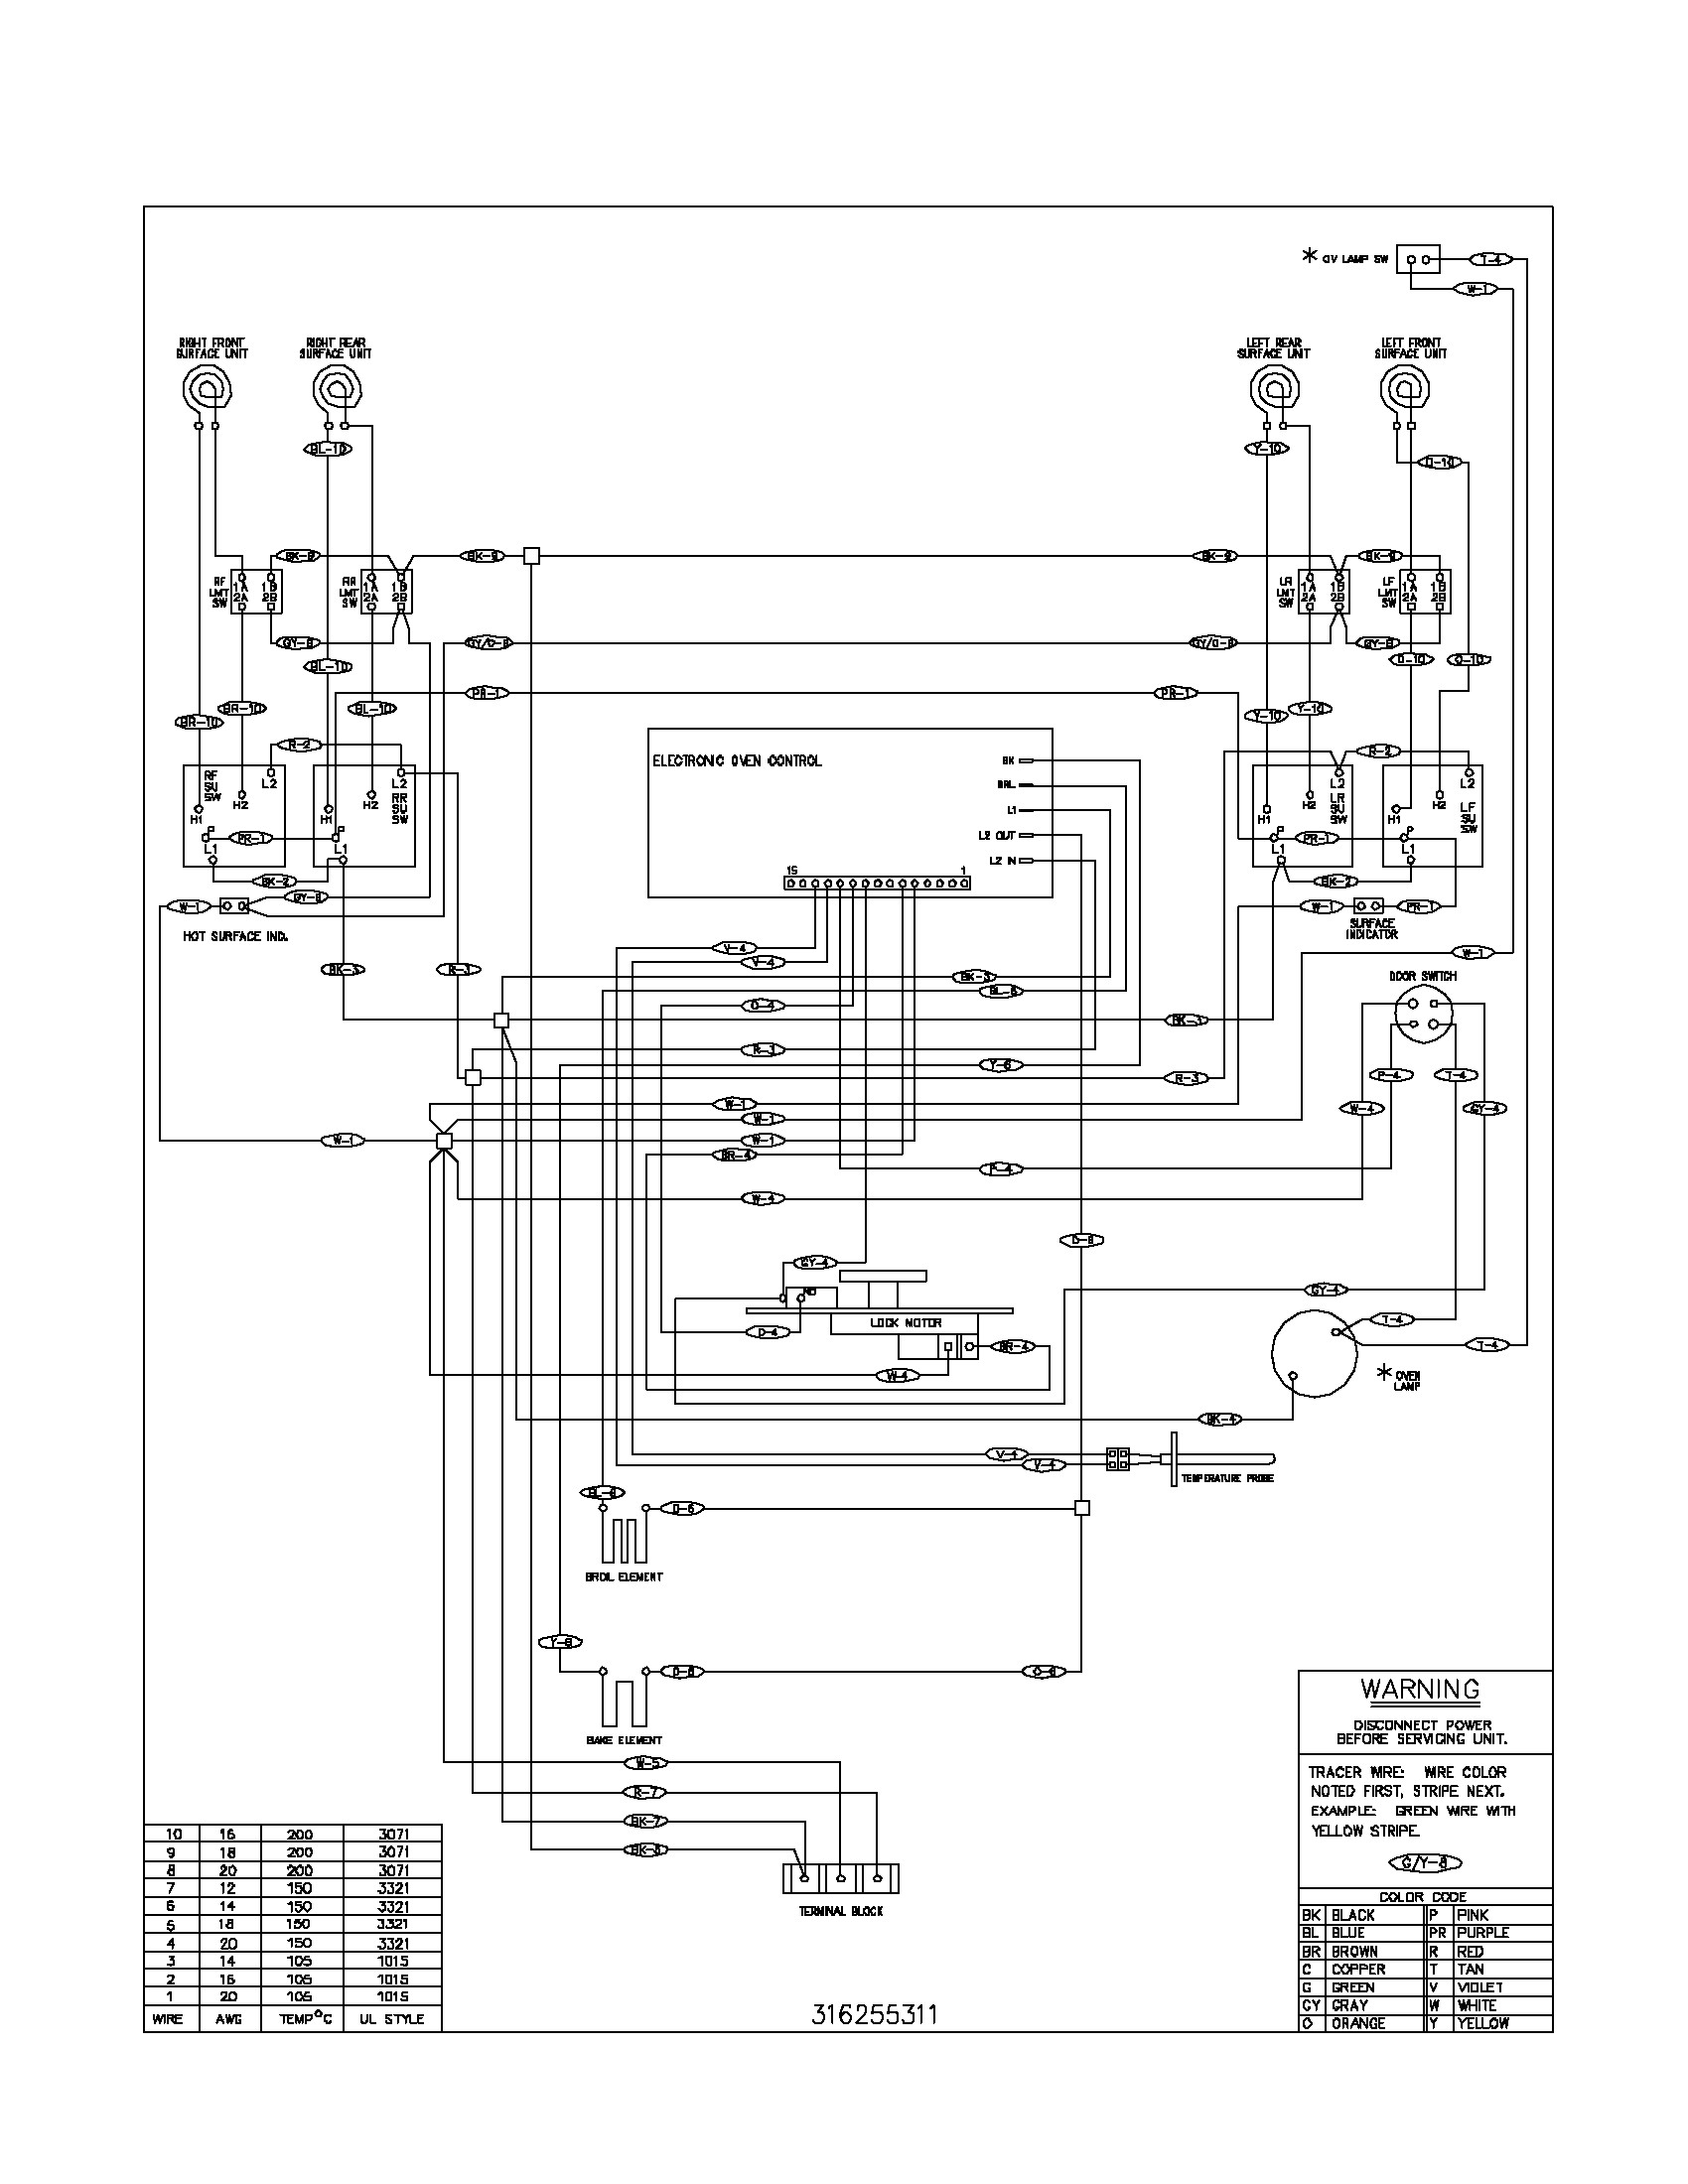 Gas Ge Oven Wiring Schematic. . Wiring Diagram Ge Dual Oven Wiring Schematic on